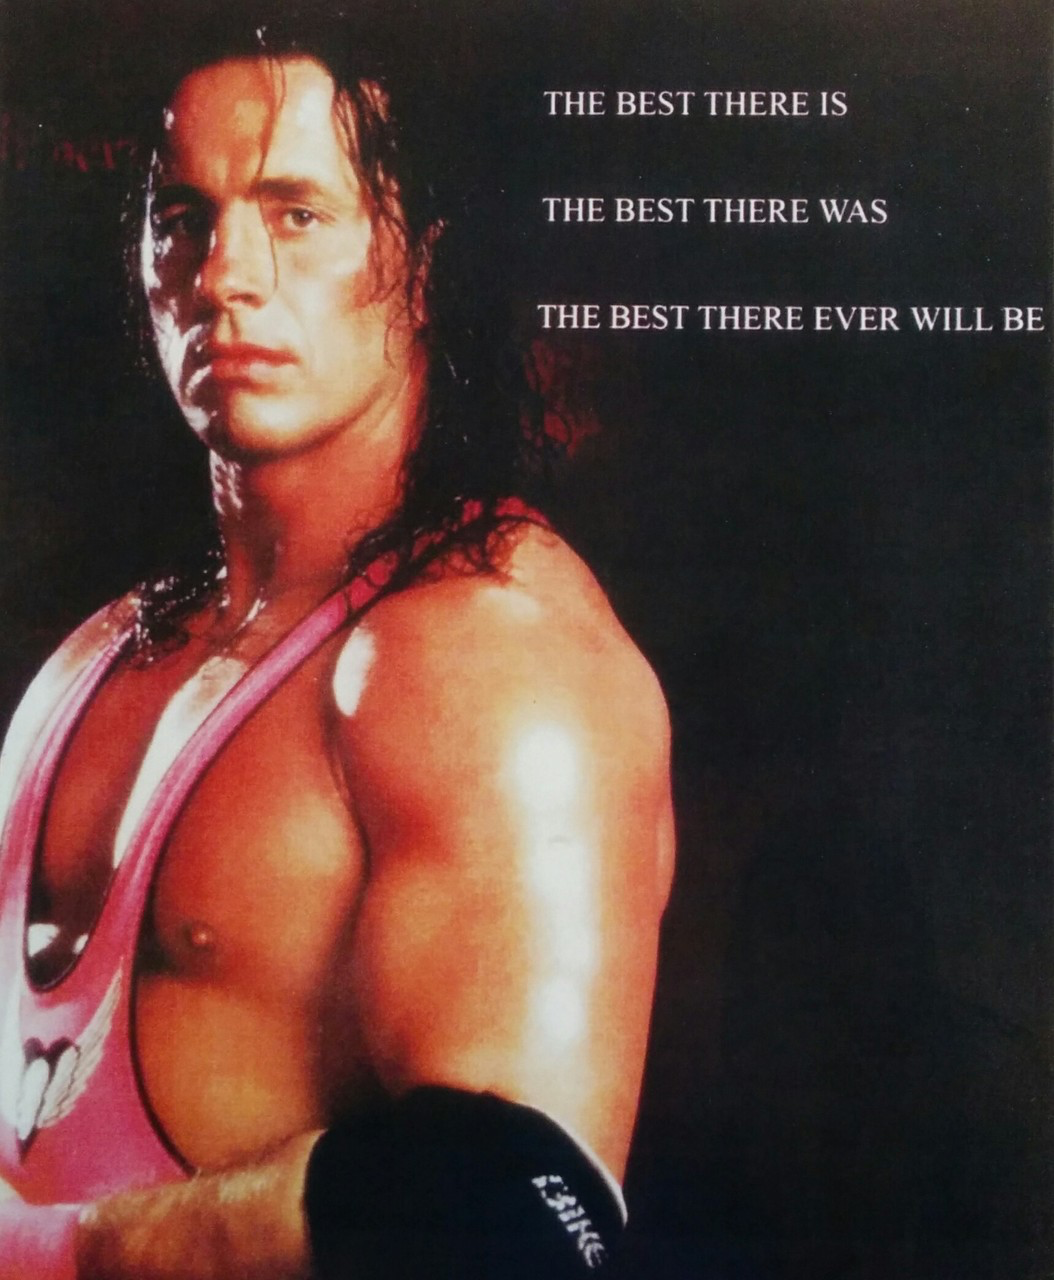 the best there was Bret Hart The best there is and the best there ever will be